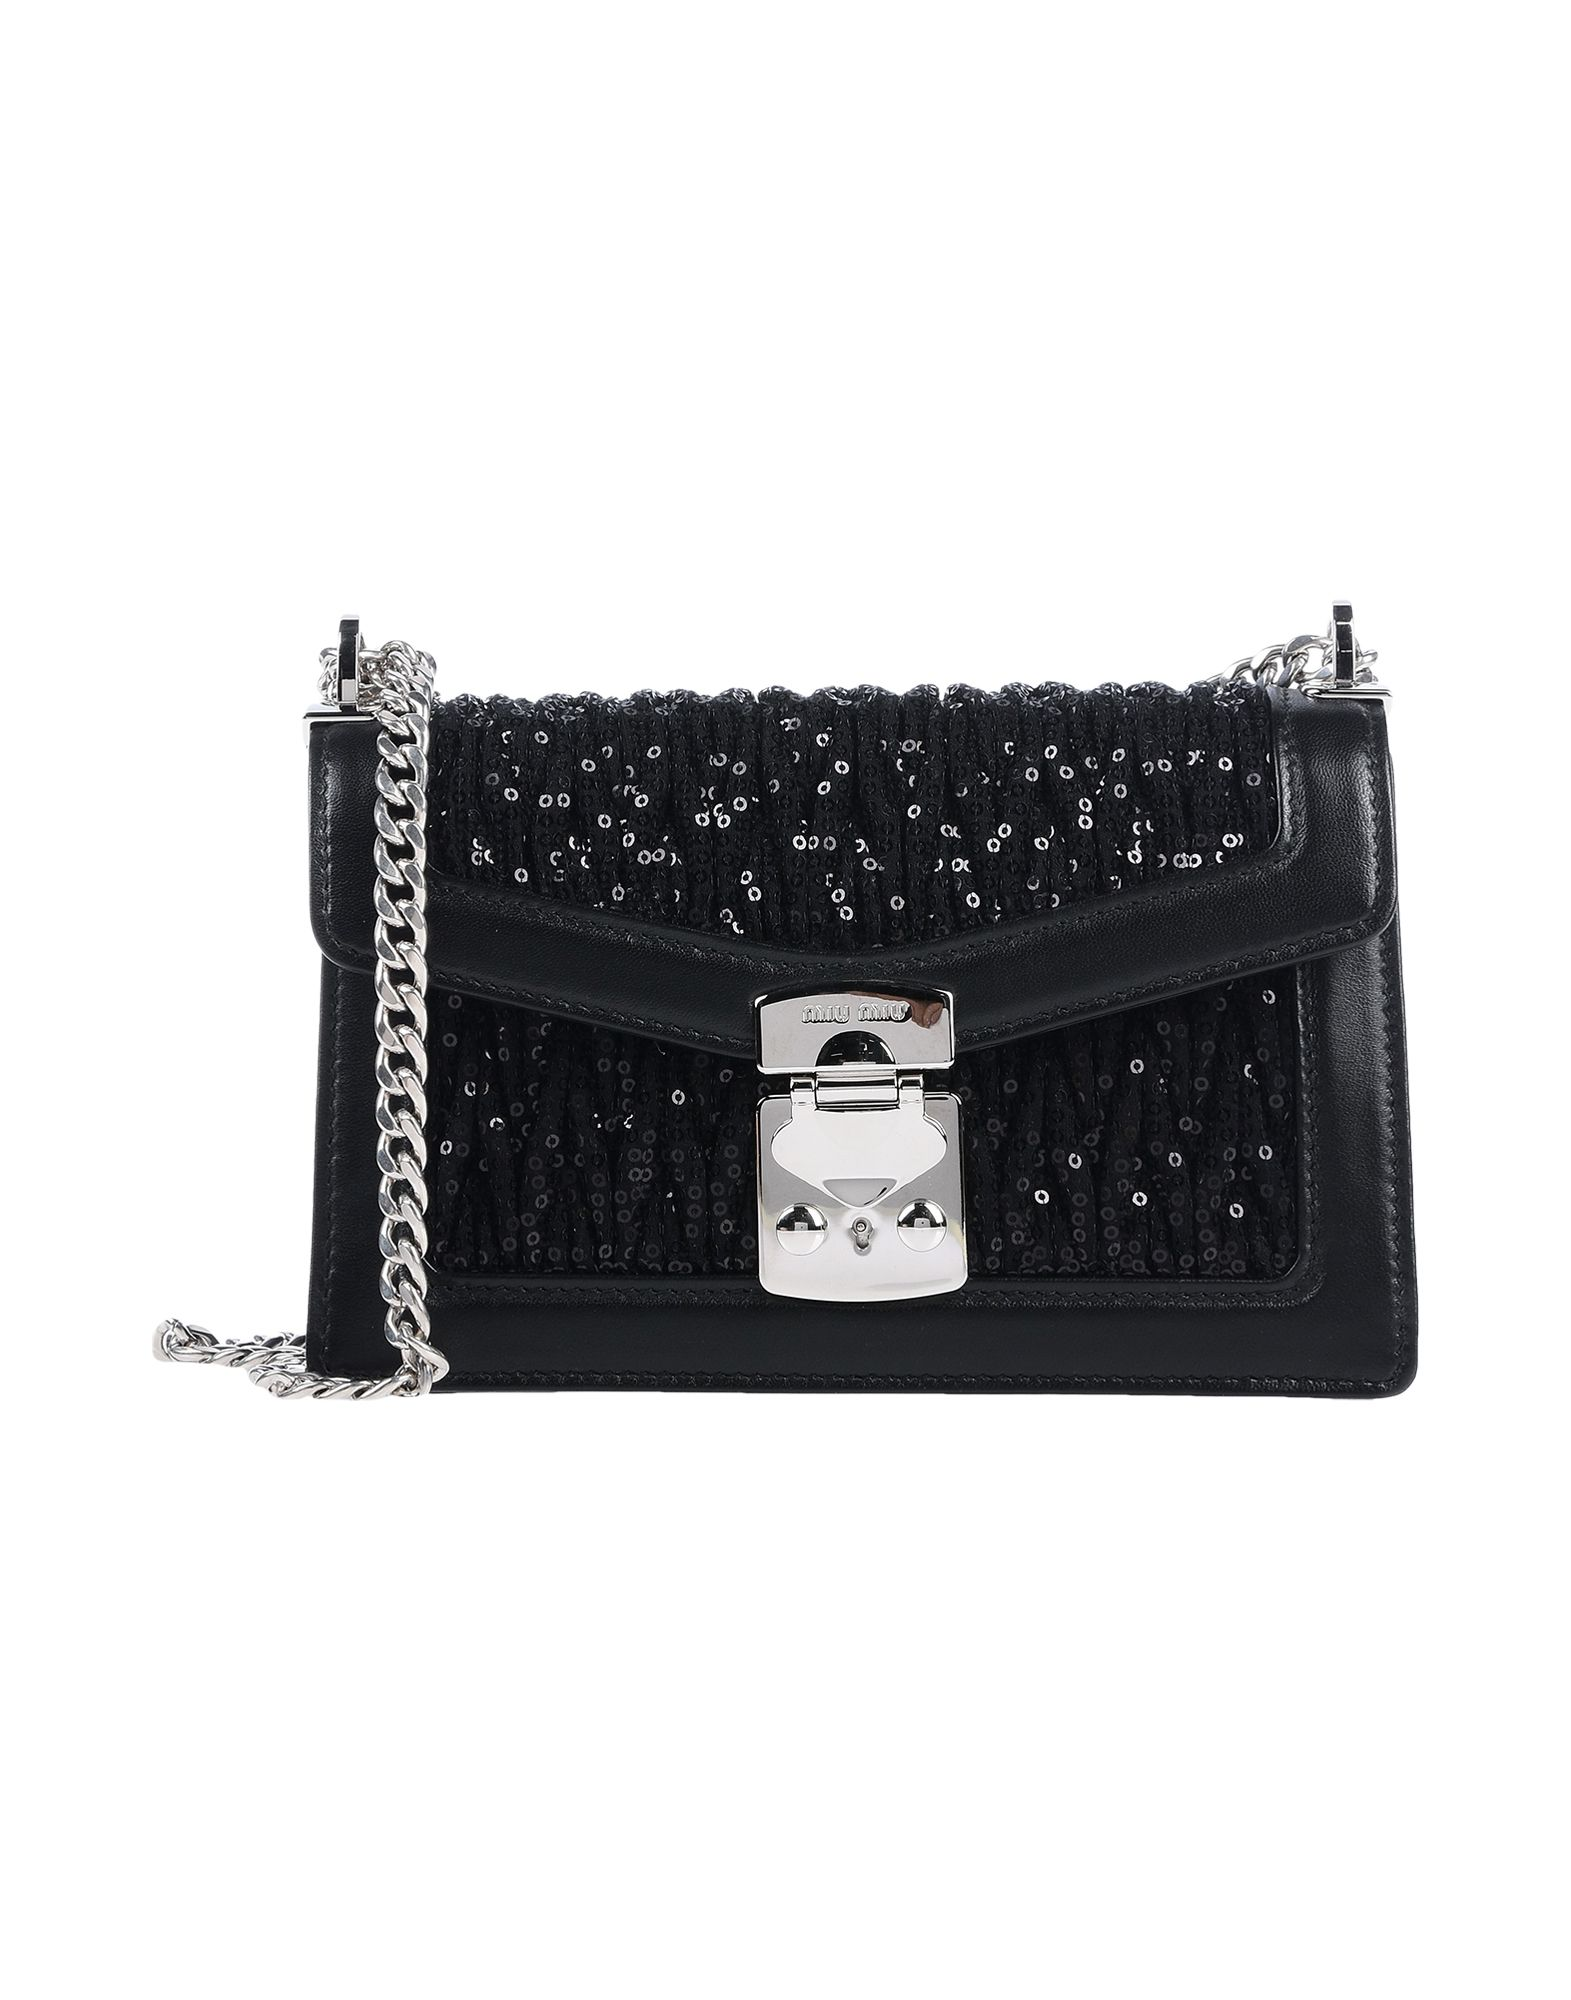 MIU MIU Cross-body bags - Item 45476026